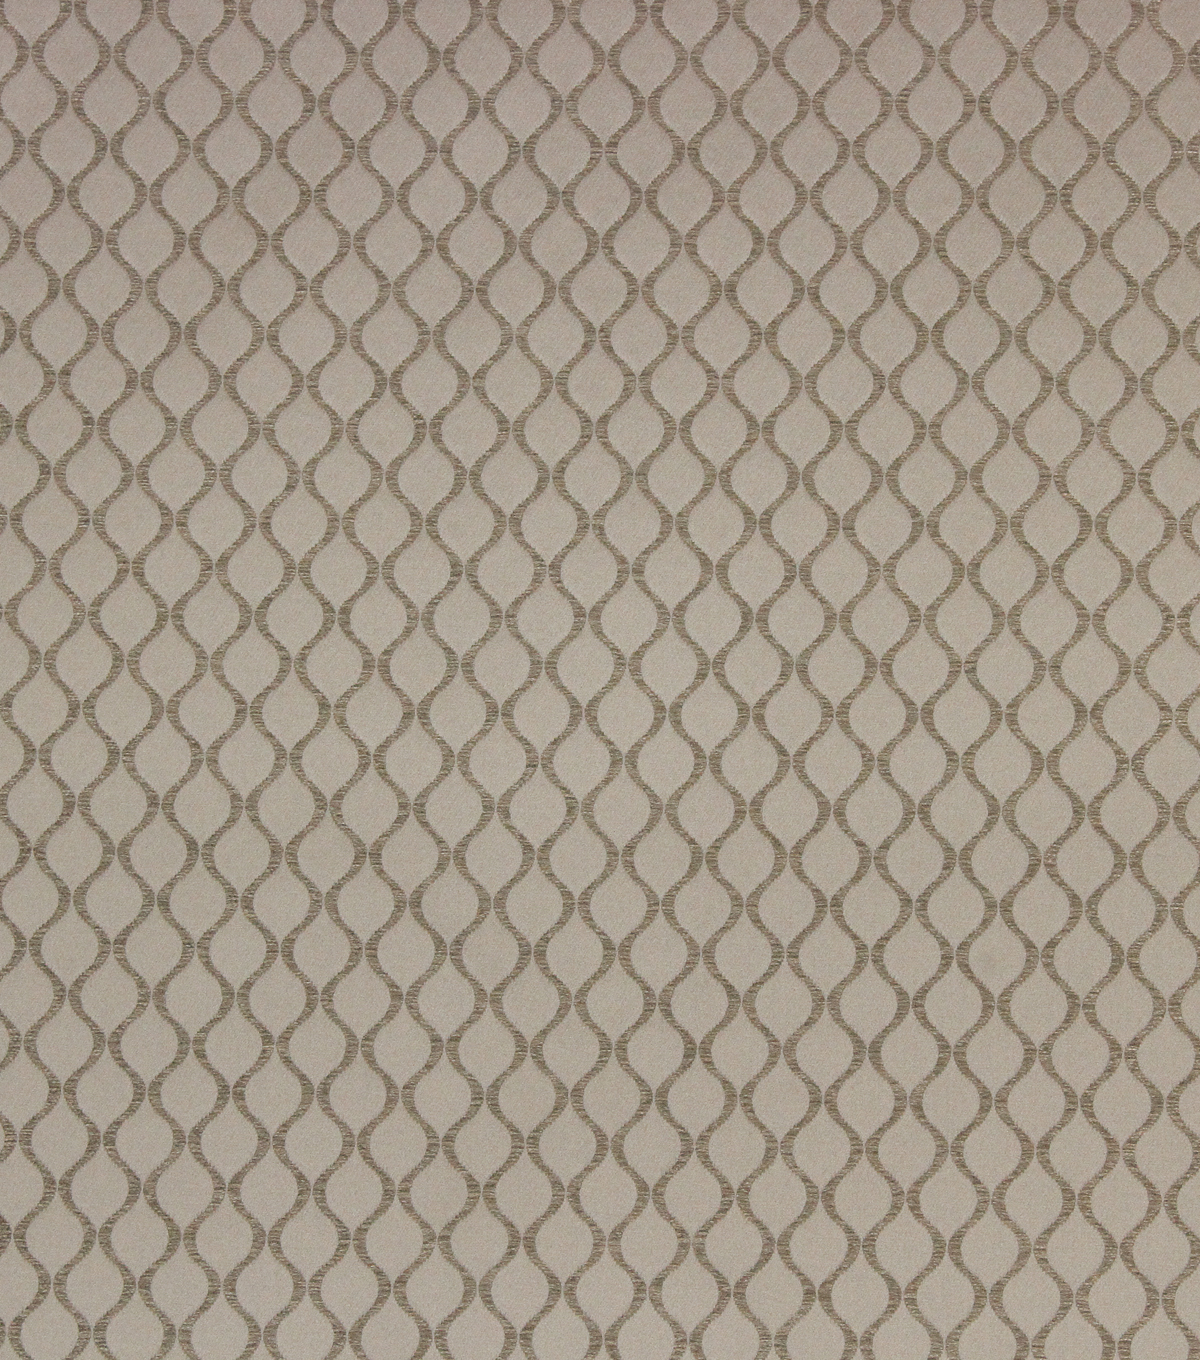 Richloom Studio Lightweight Decor Fabric 55\u0022-Golden Gate Ivory